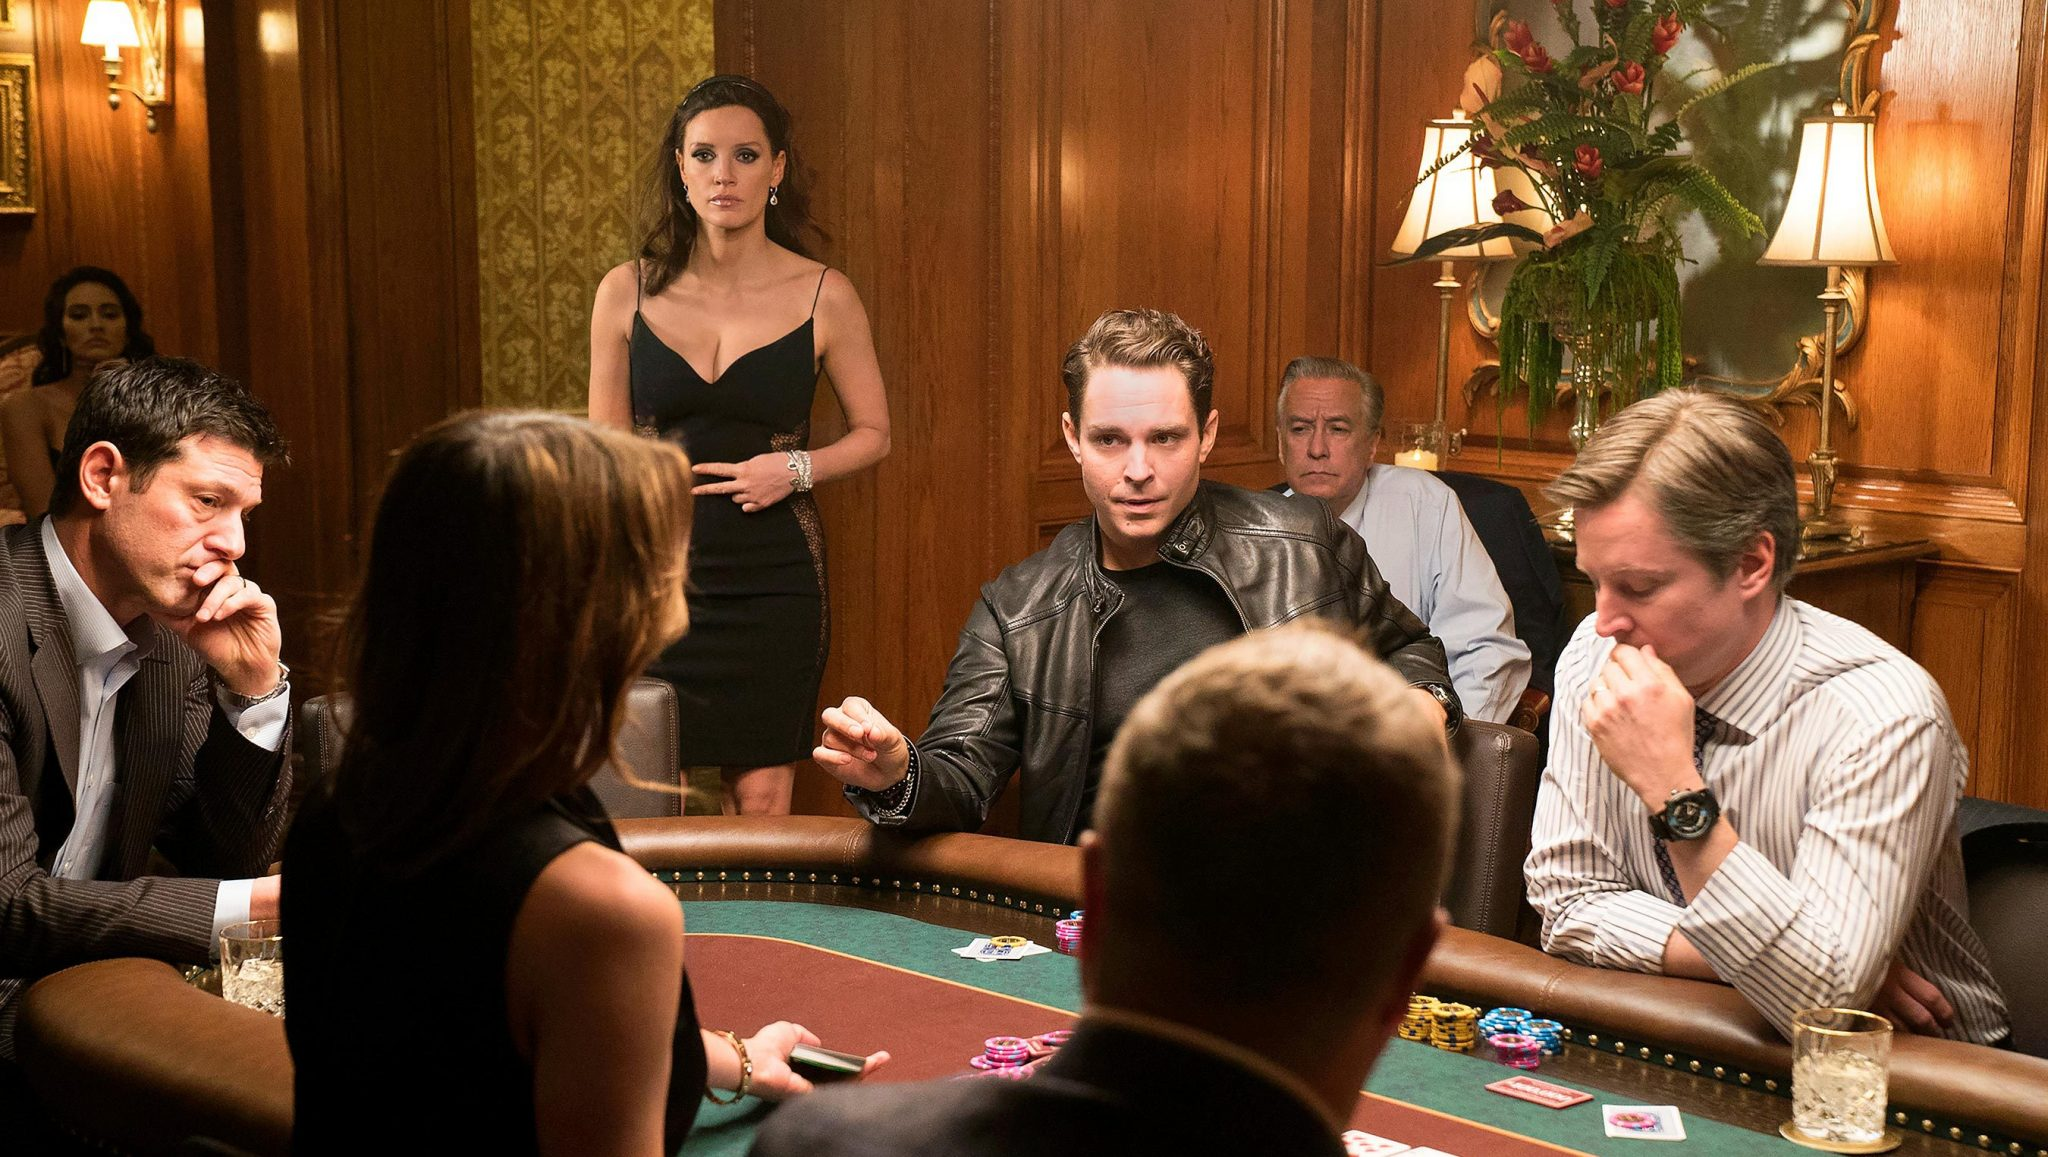 Aaron Sorkin takes charge for the entertaining 'Molly's Game'